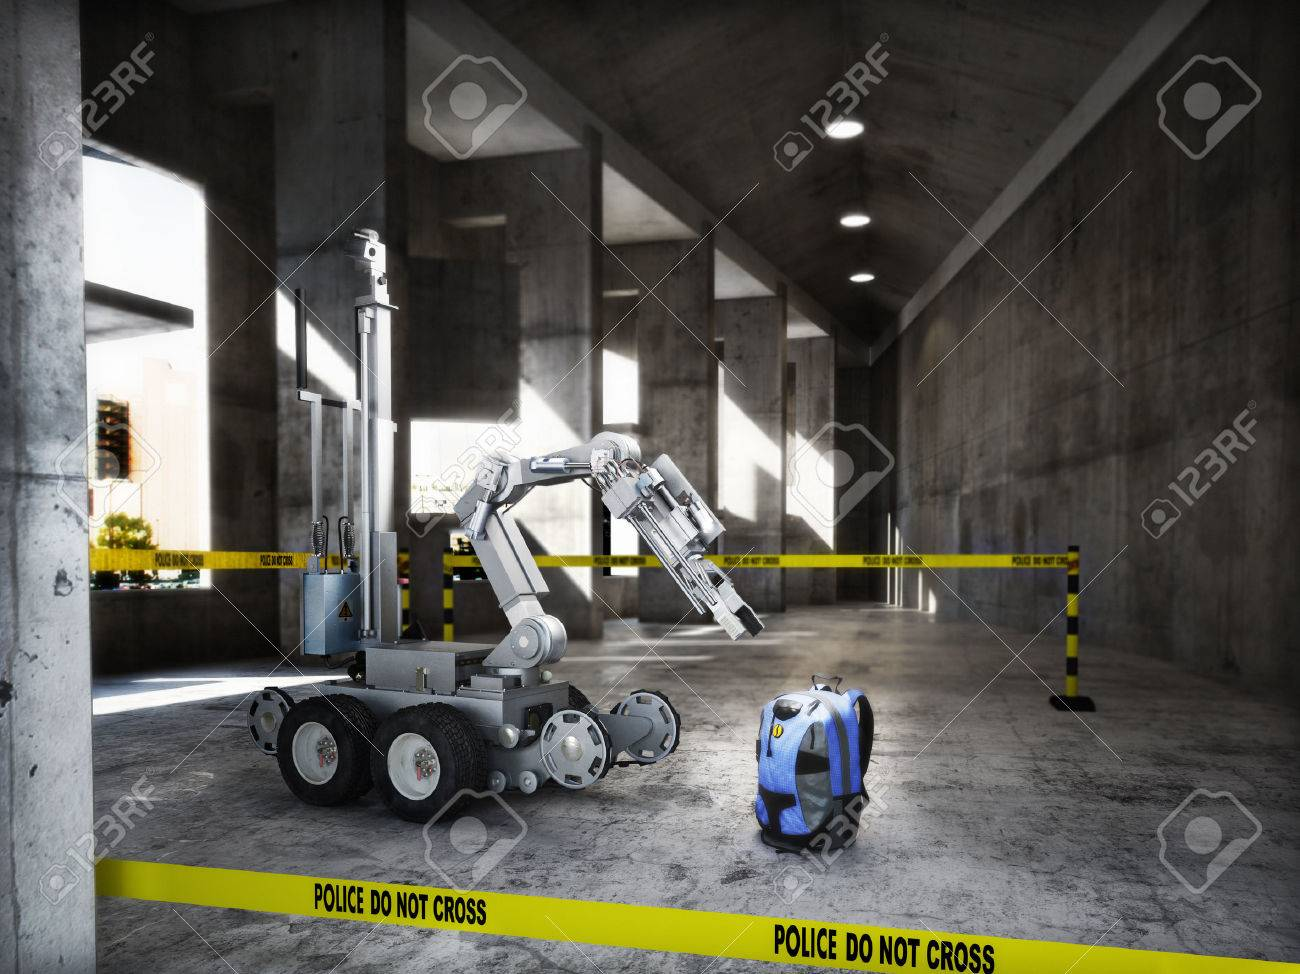 Police controlled bomb squad robot inspecting a suspicious backpack item inside a building interior.3d rendering. Standard-Bild - 58972052